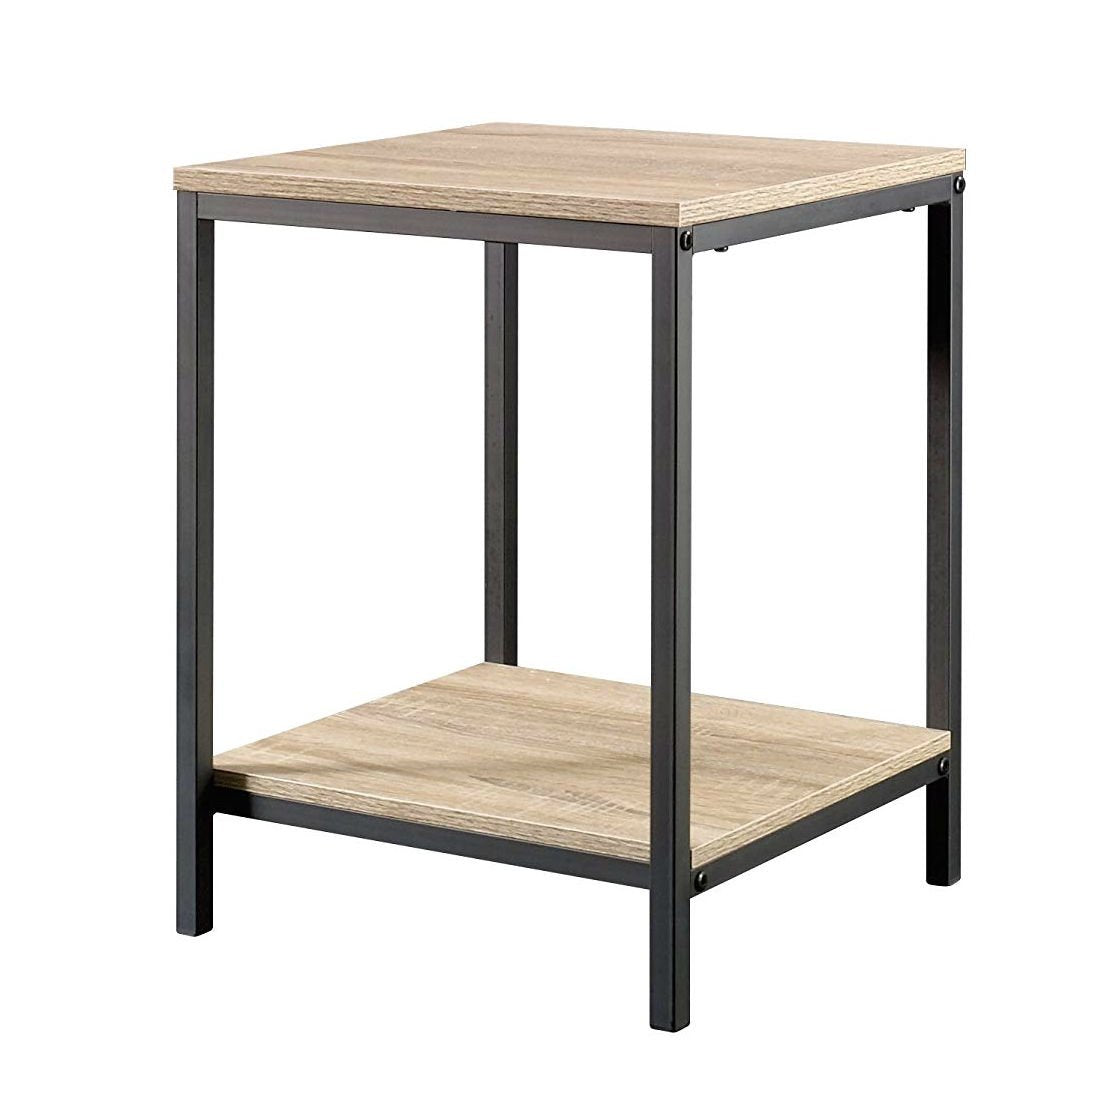 Modern Black Metal Frame End Table with Oak Finish Wood Top and Bottom Shelf